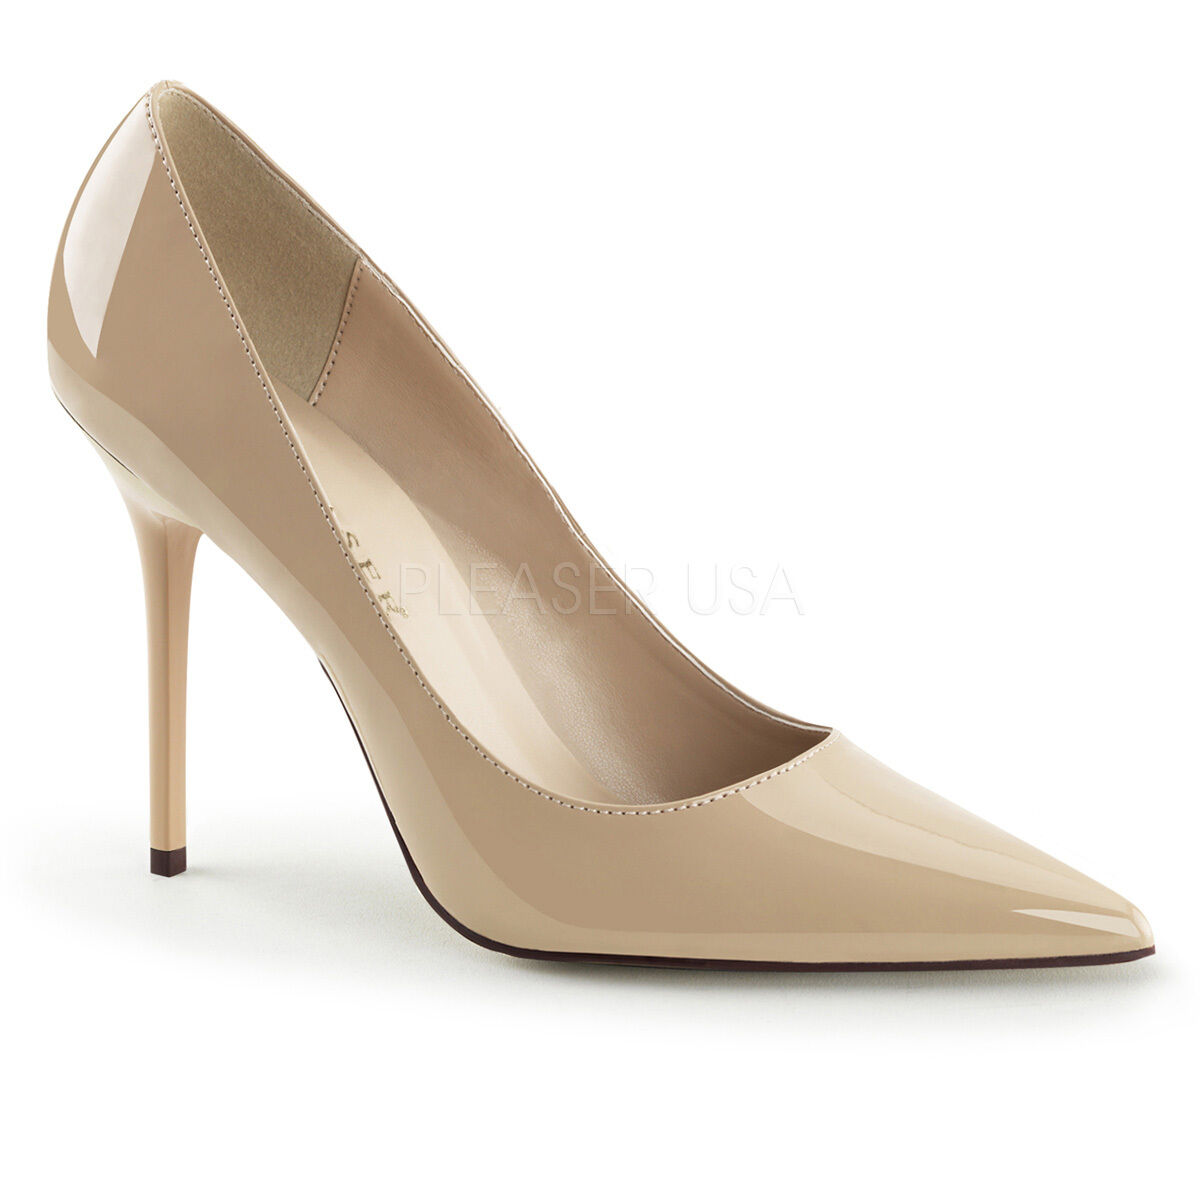 PLEASER shoes Sexy Pointed Toe 4  Stiletto High Heels Cream Pumps CLAS20 CR